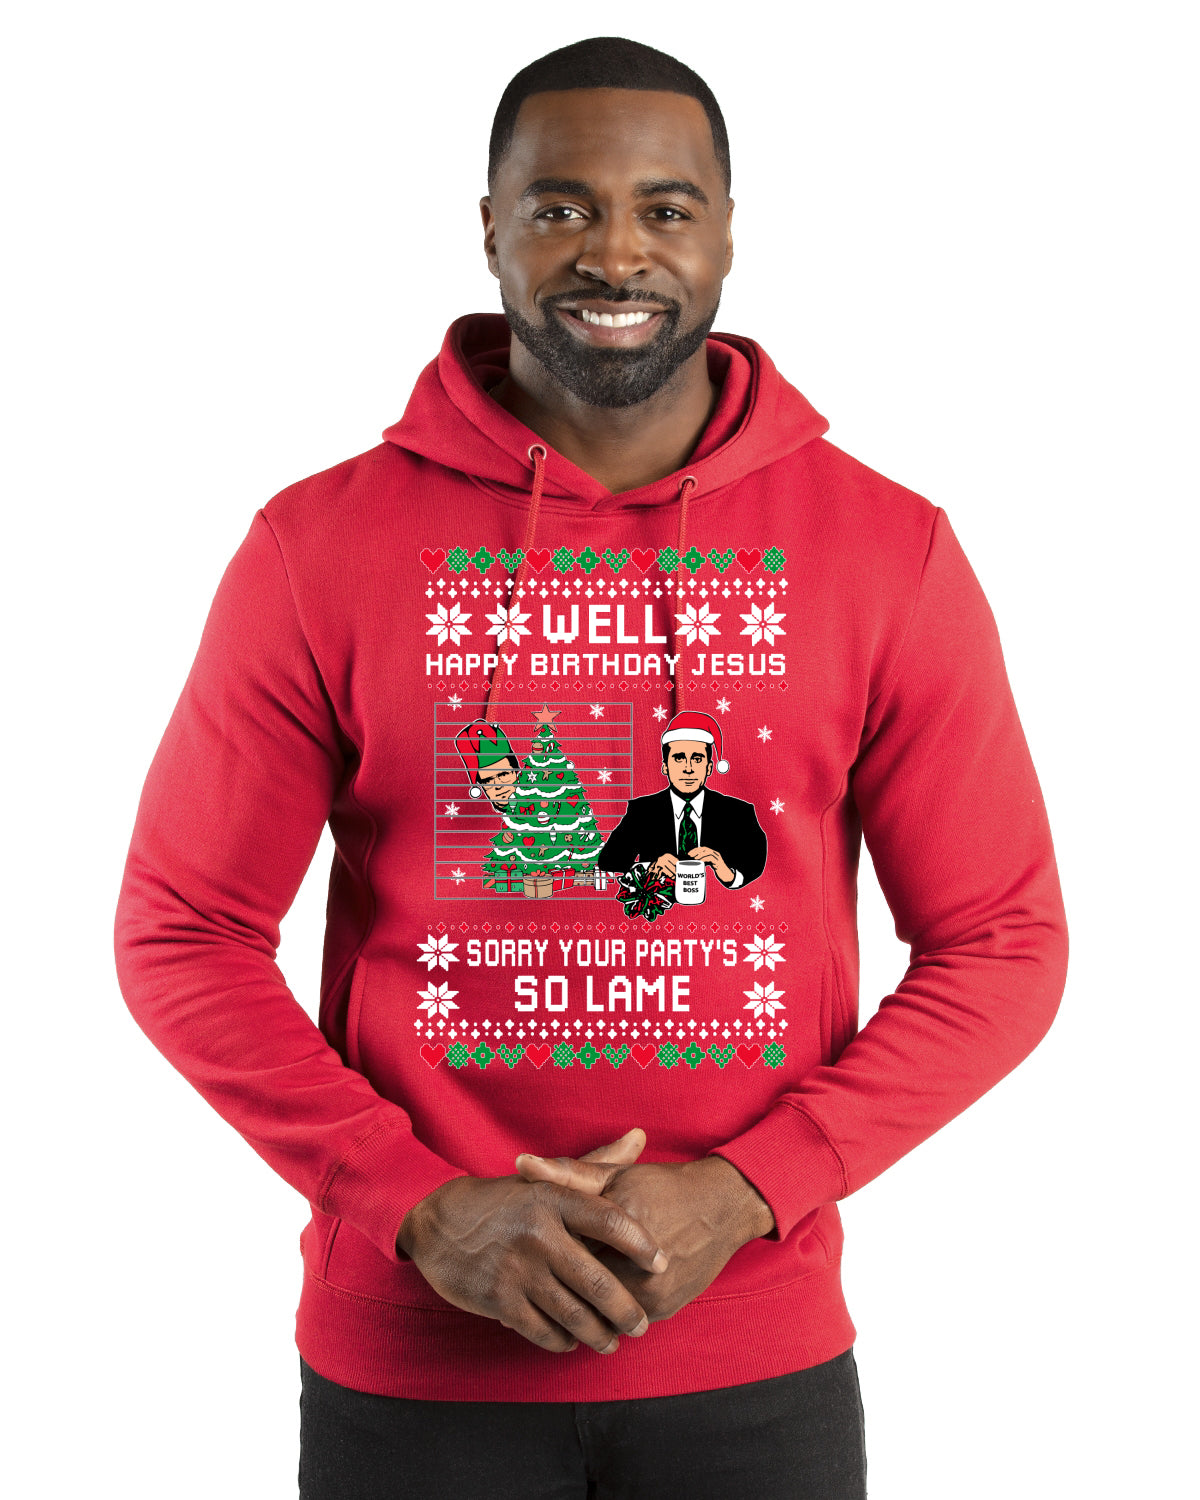 Well Happy Birthday Jesus Funny Quote Office Christmas Premium Graphic Hoodie Sweatshirt